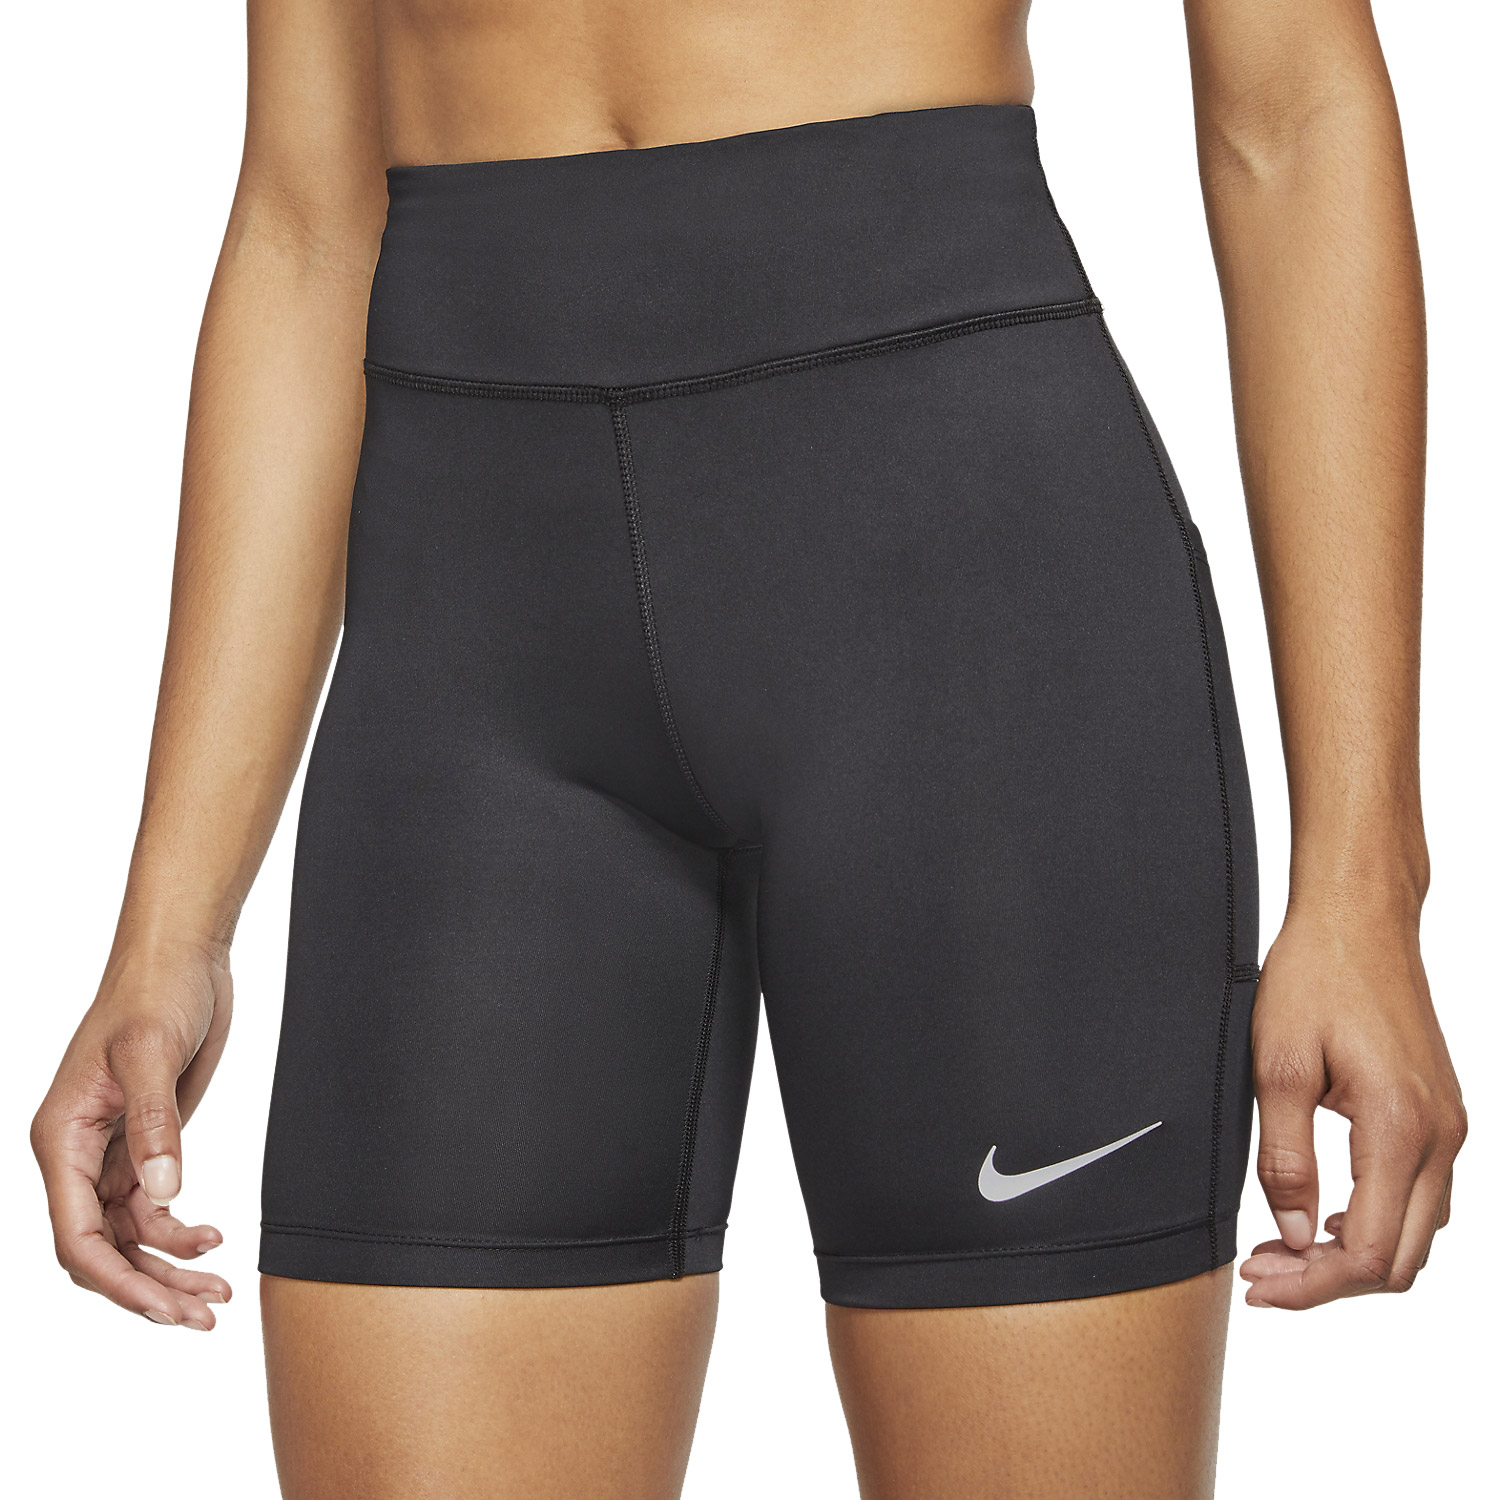 Nike Fast 7in Shorts - Black/Reflective Silver